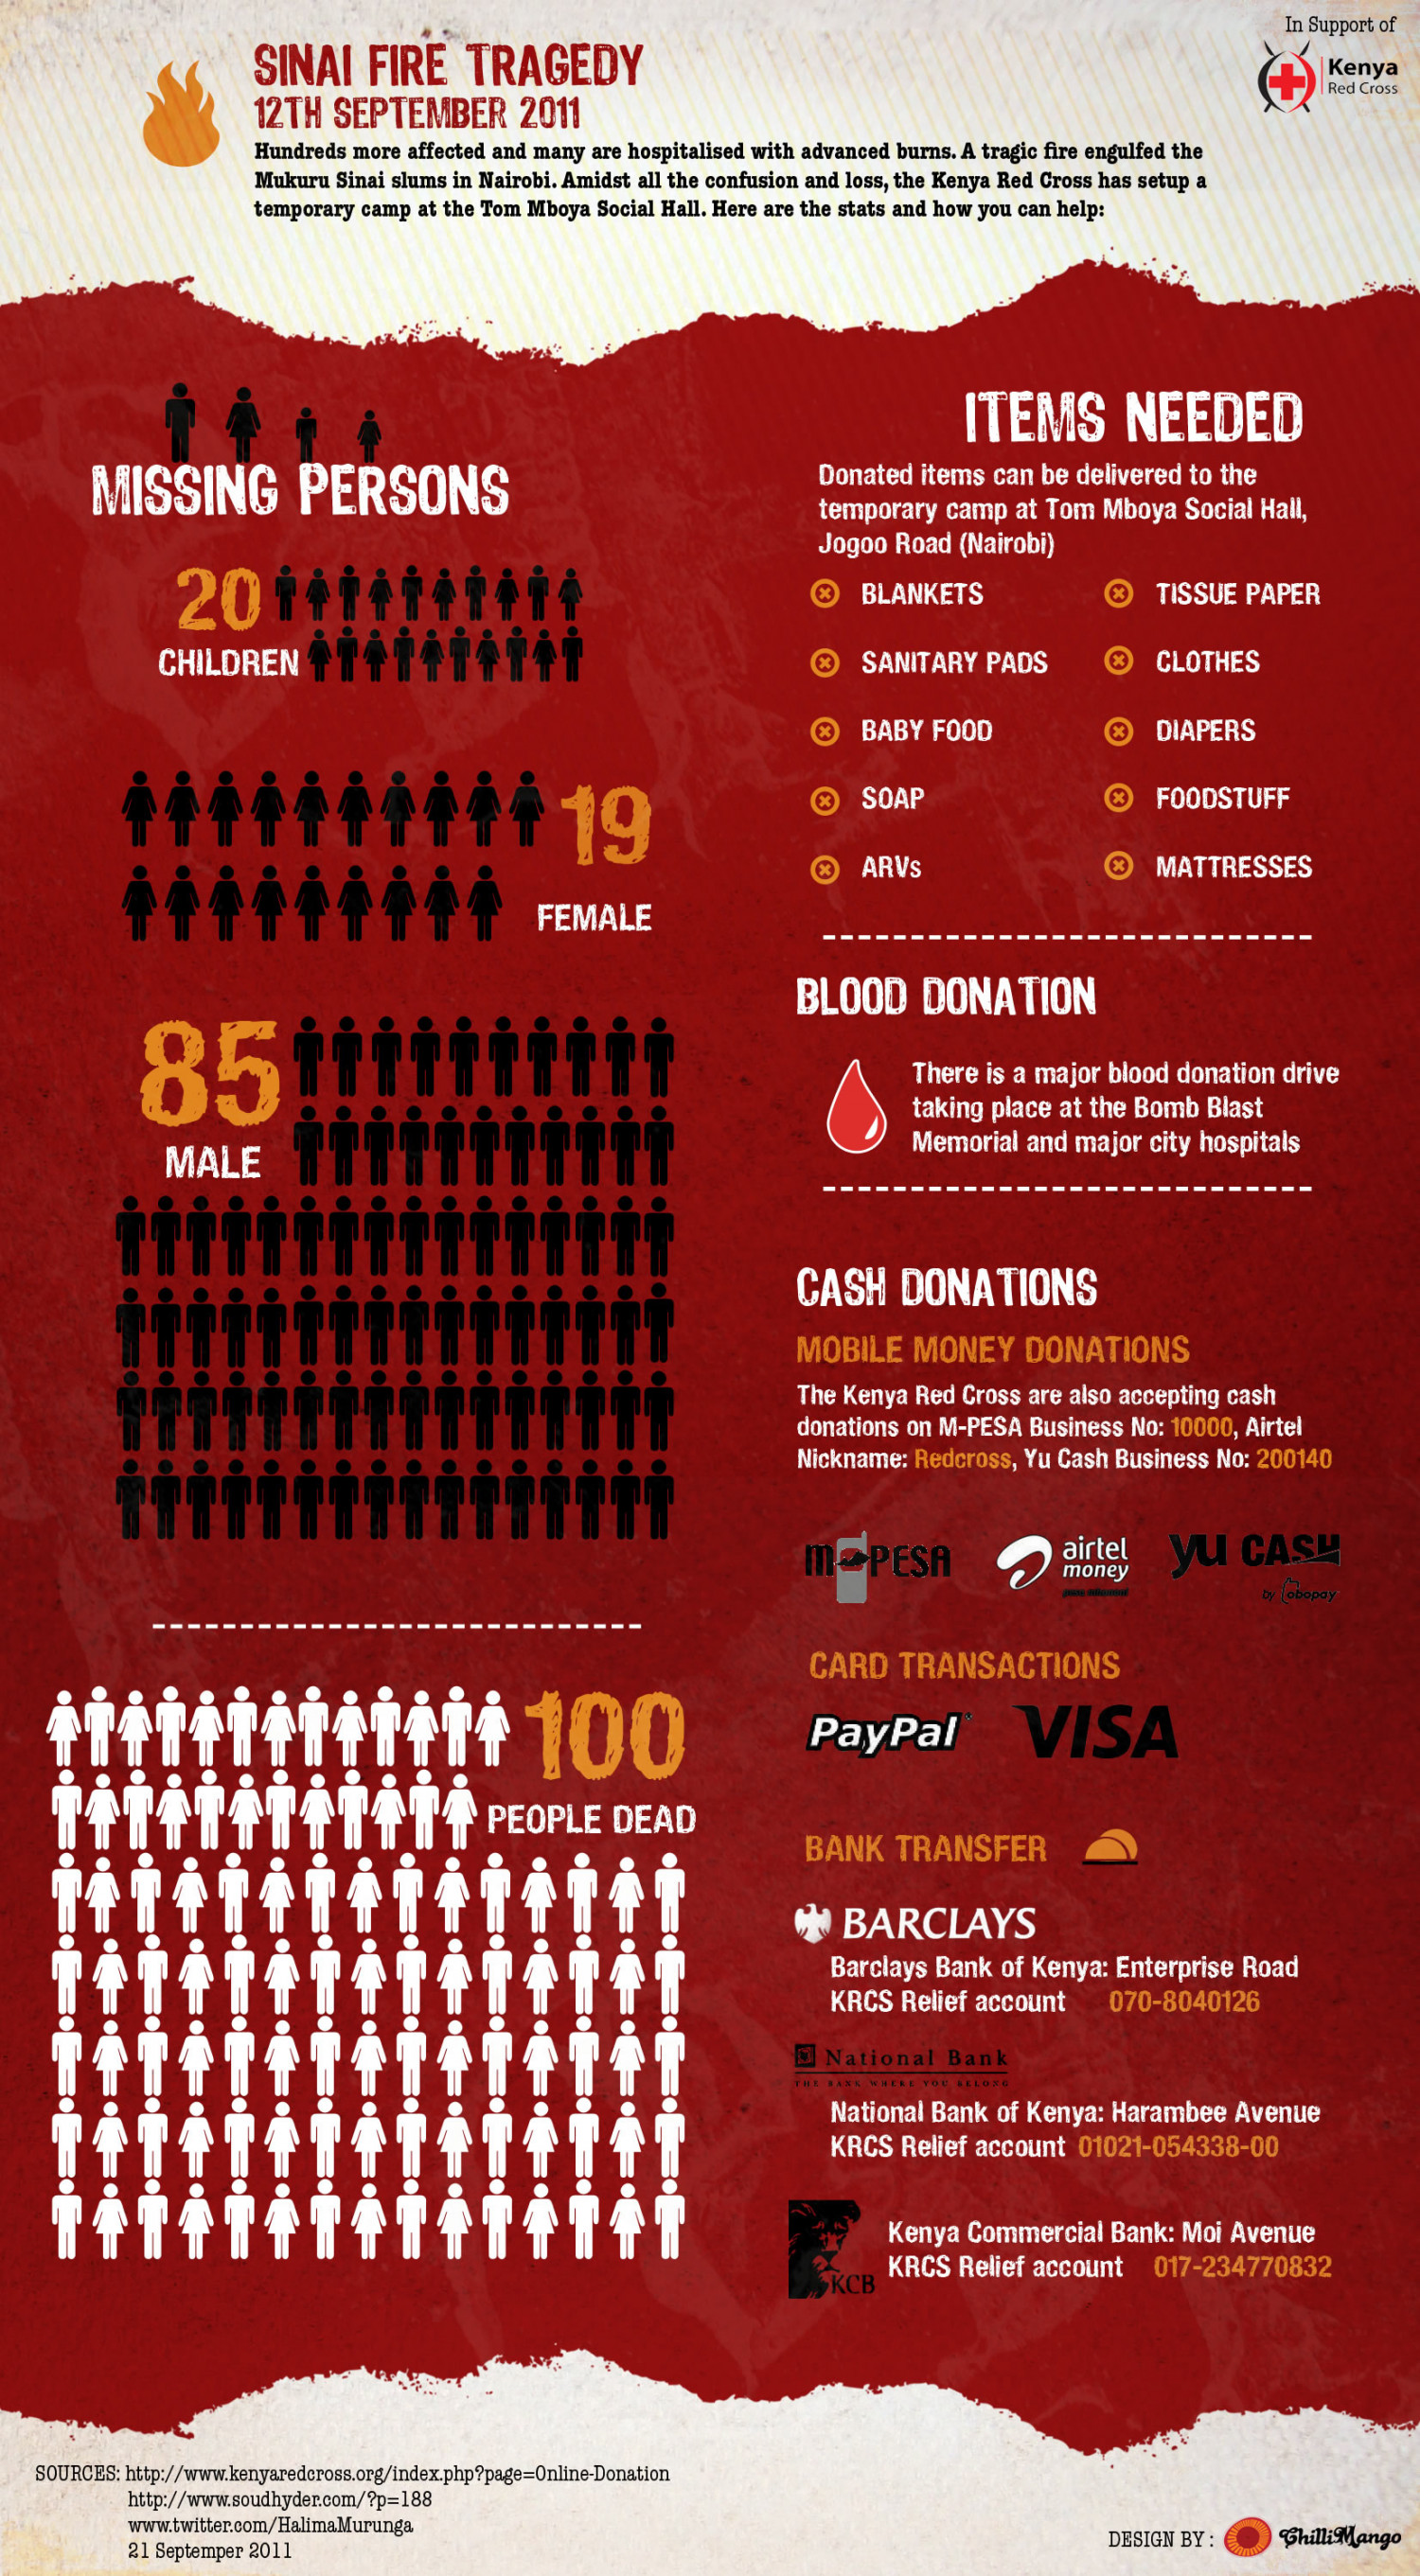 Sinai Fire Tragedy Infographic